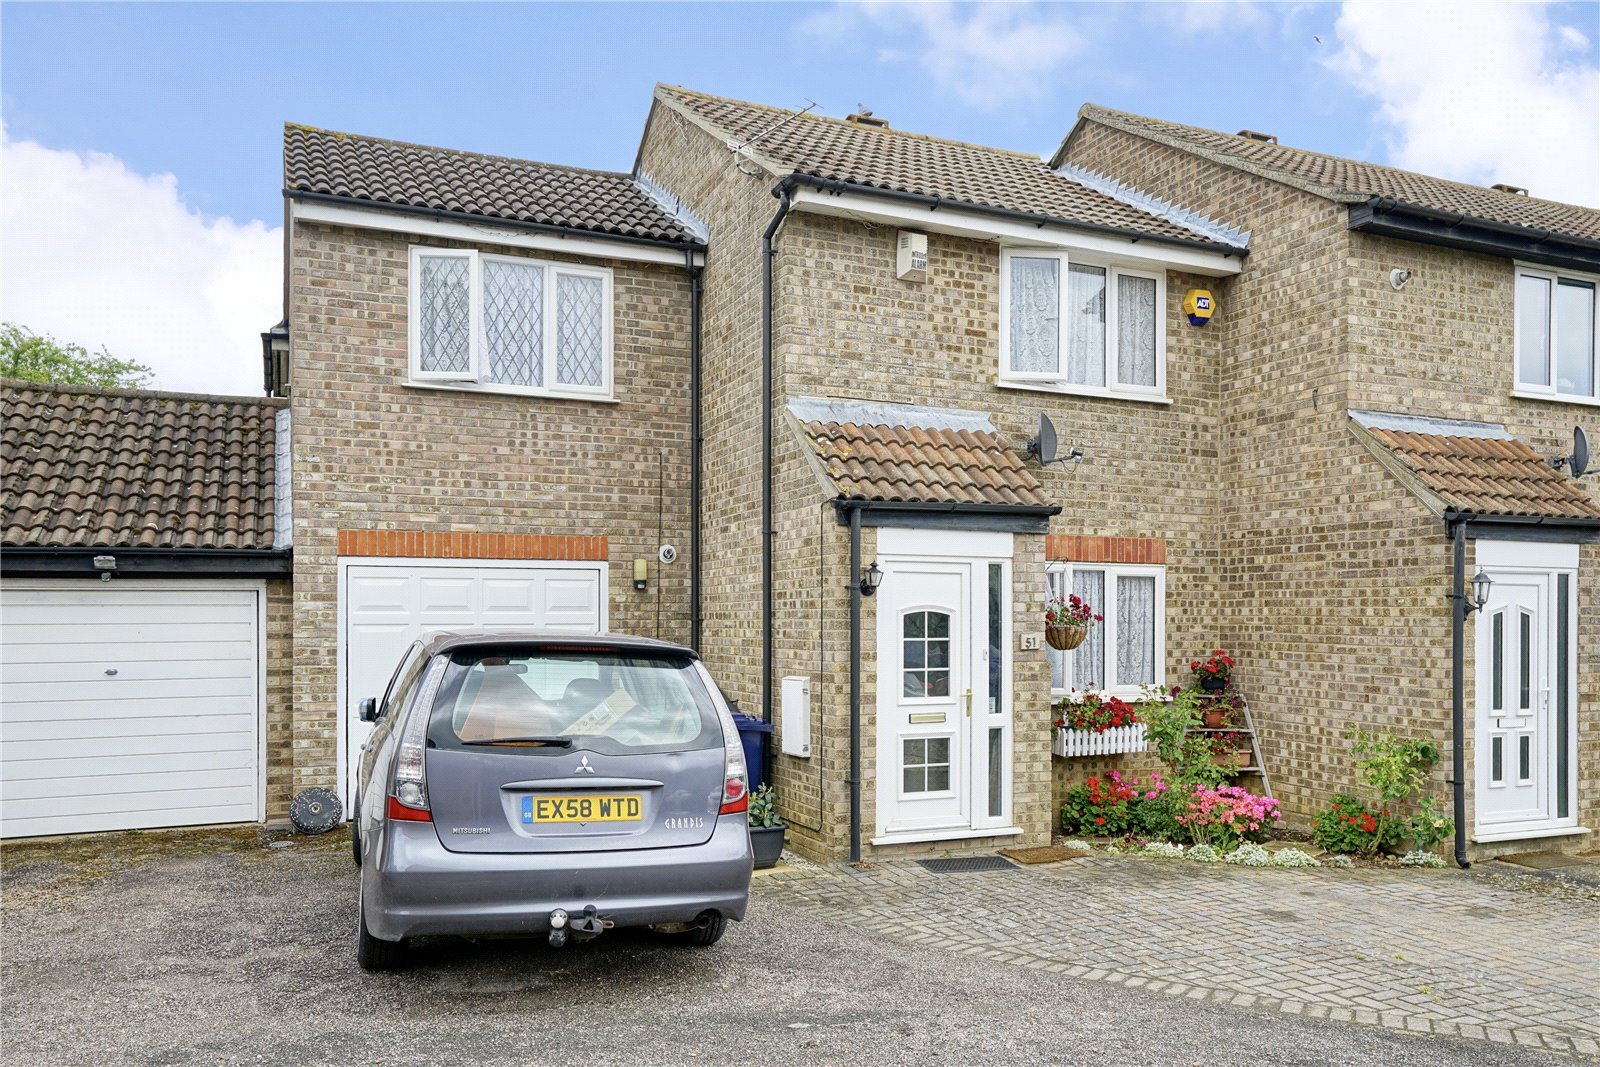 3 bed house for sale in Cunningham Way, Eaton Socon - Property Image 1